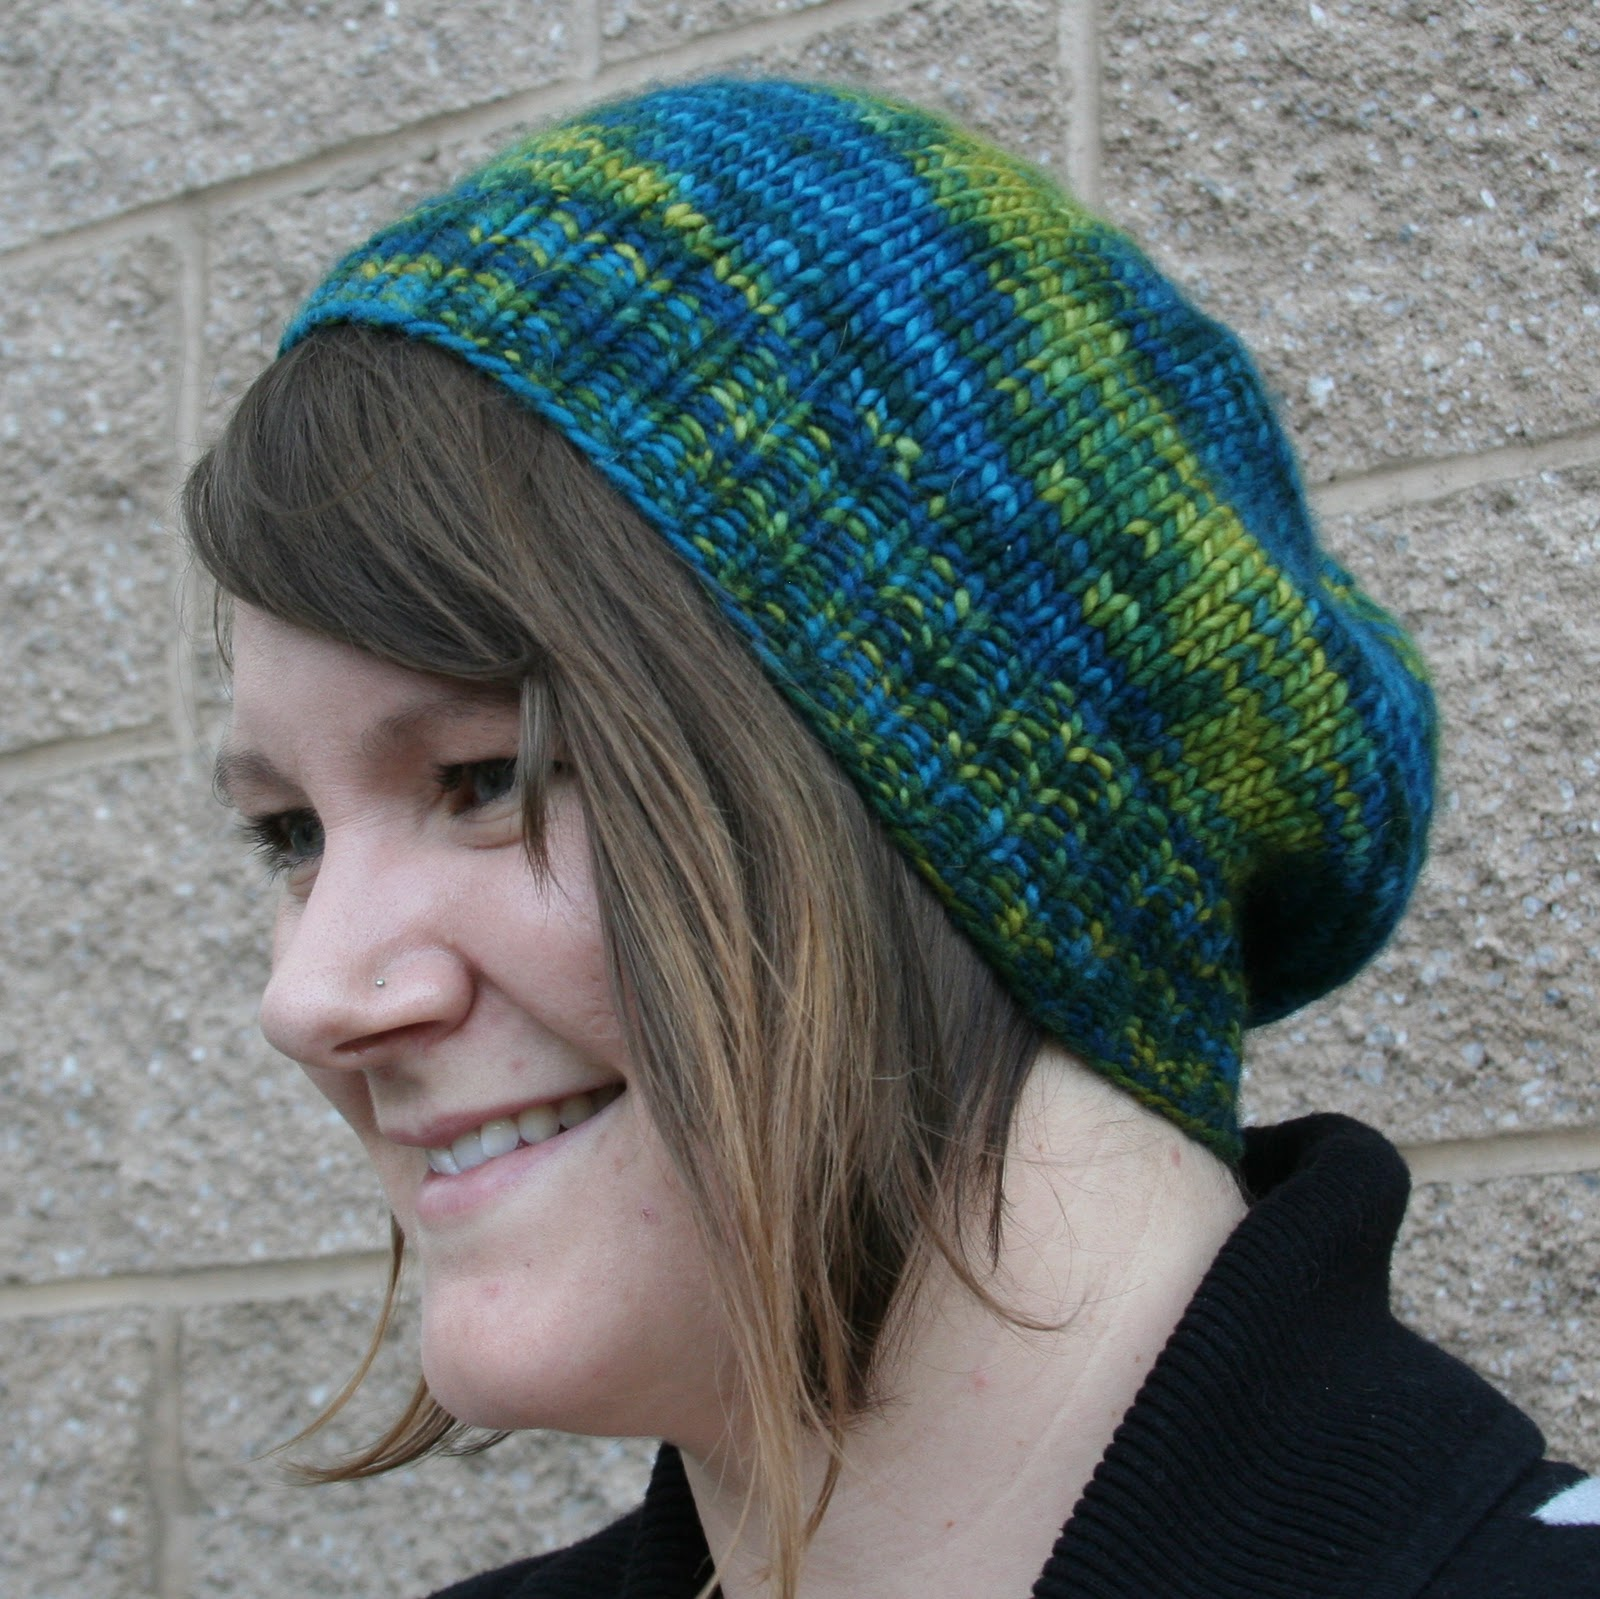 Hipster Hat Knitting Pattern : Jimmy Beans Wool Blog: The Journey of a New Knitwear Designer